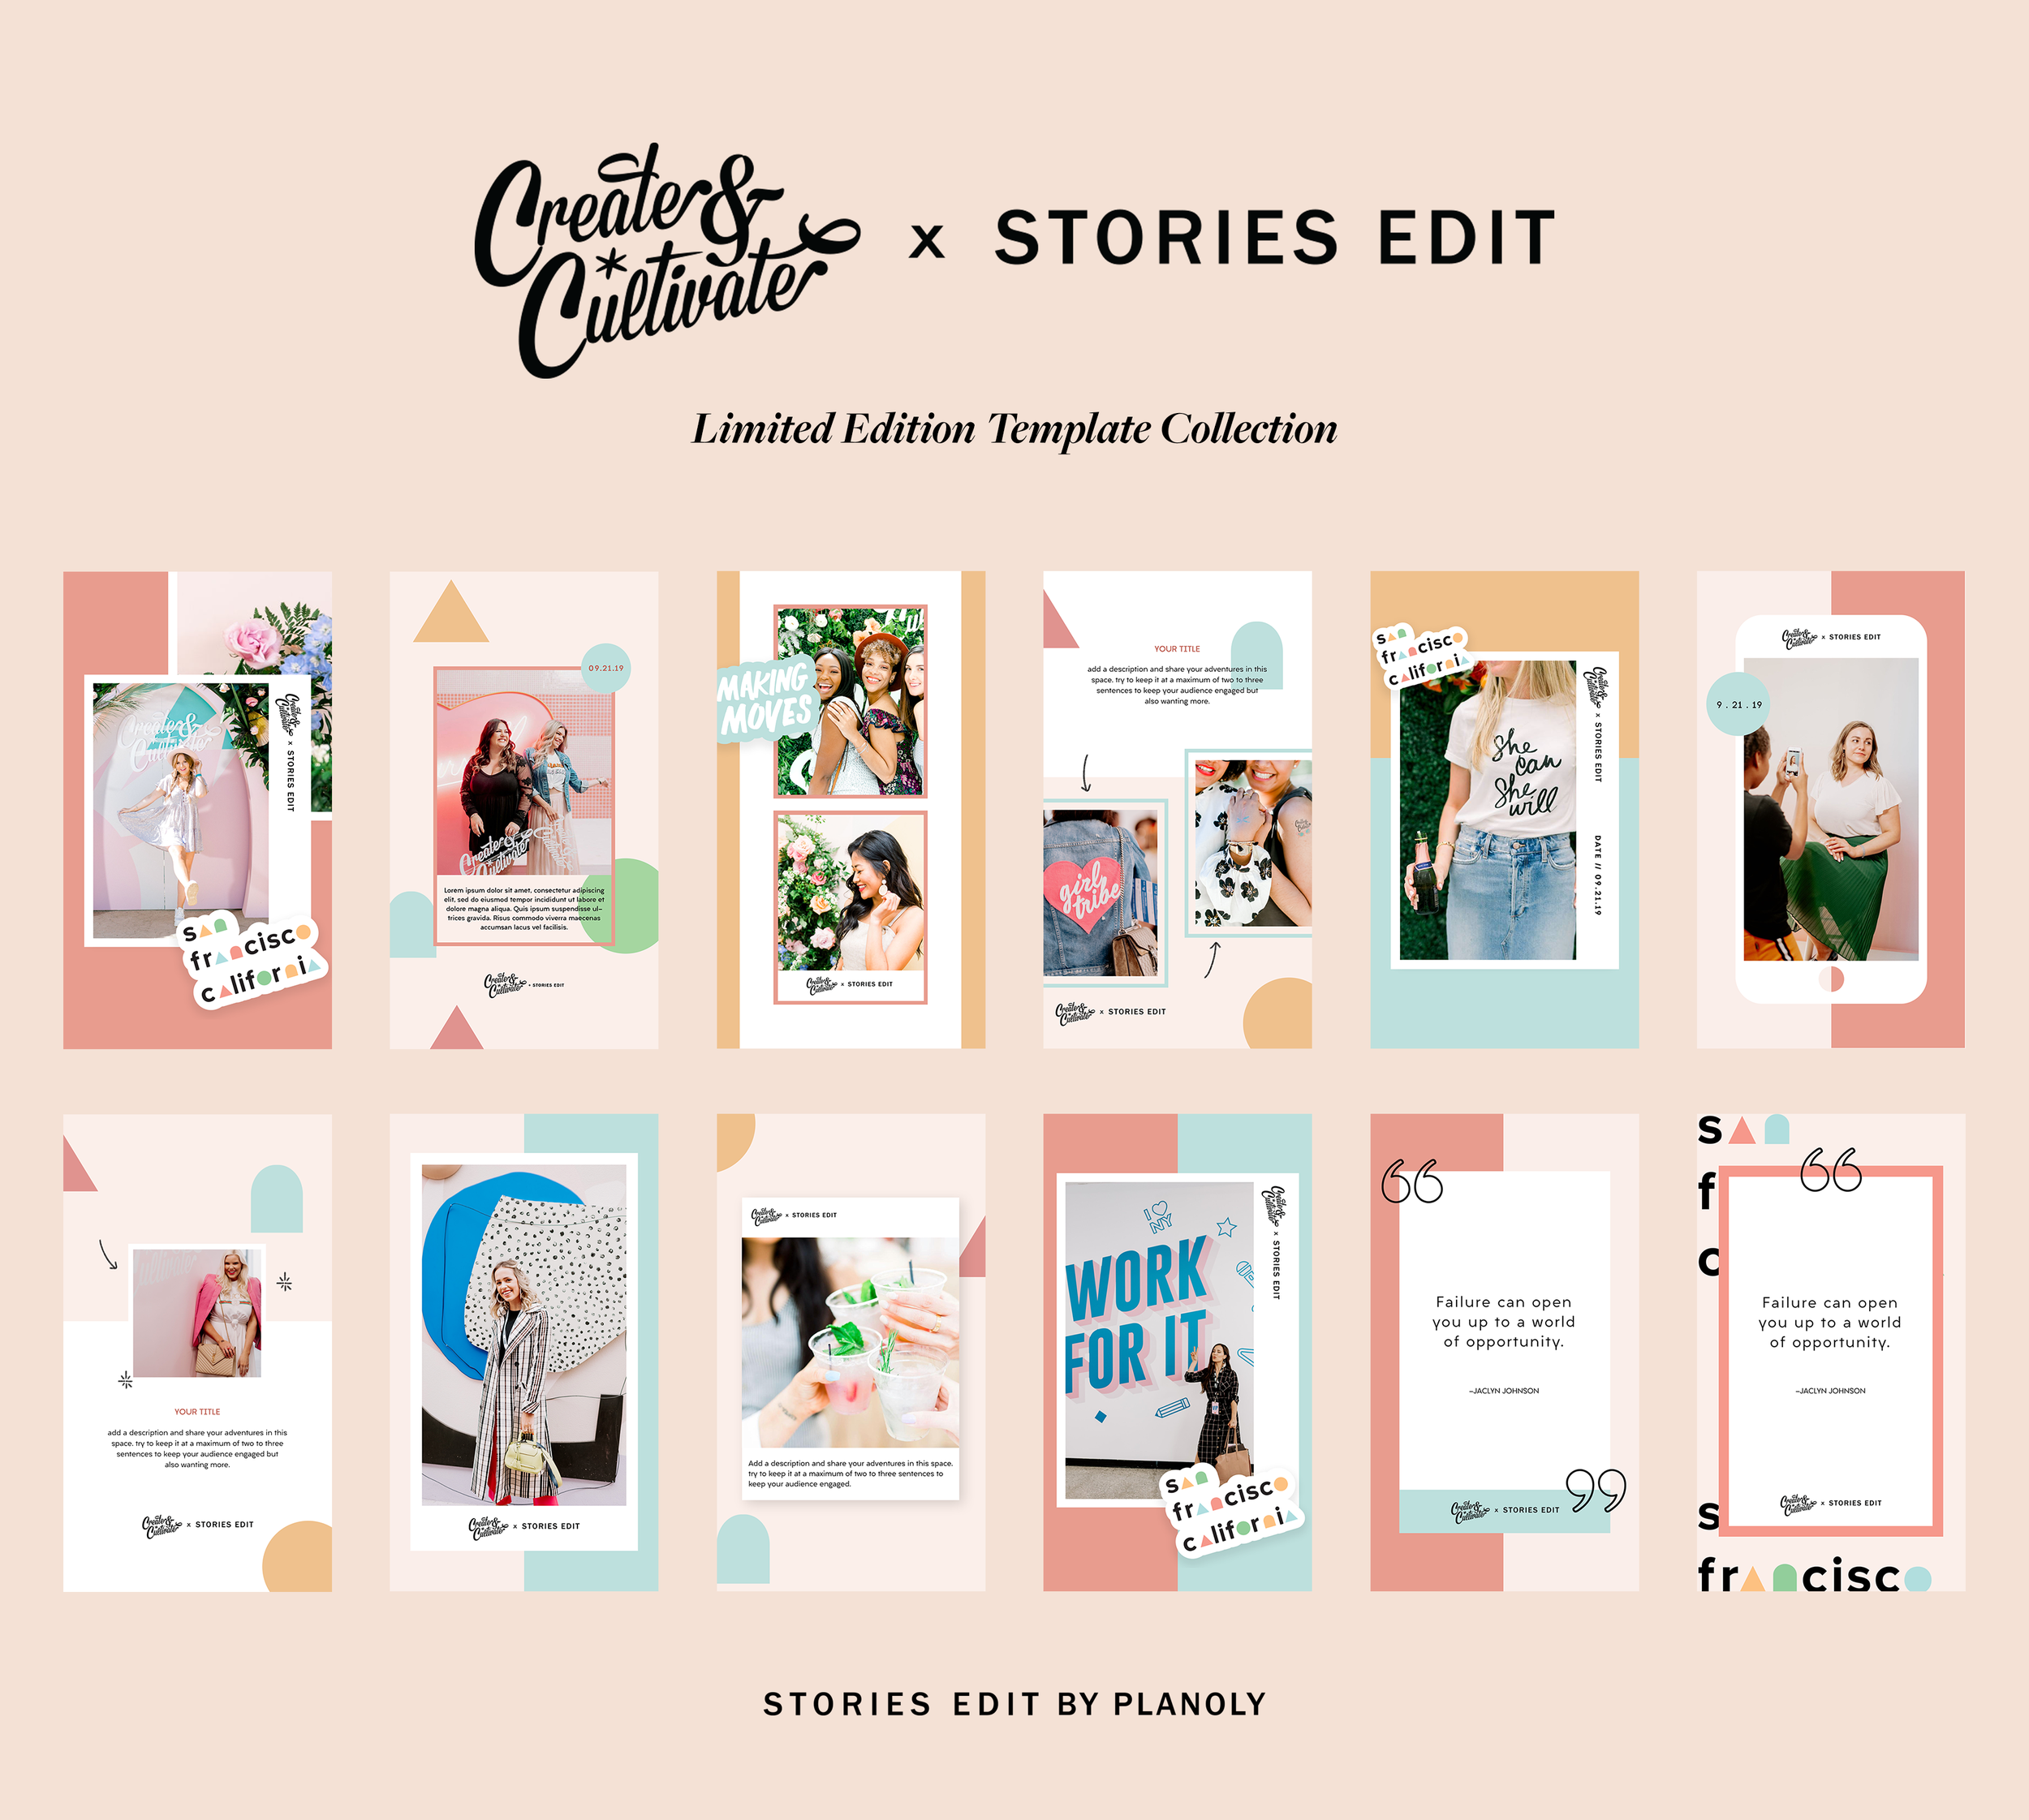 Planoly - Blog Post -  StoriesEdit x Create & Cultivate Collection  - Image 1-v2.png